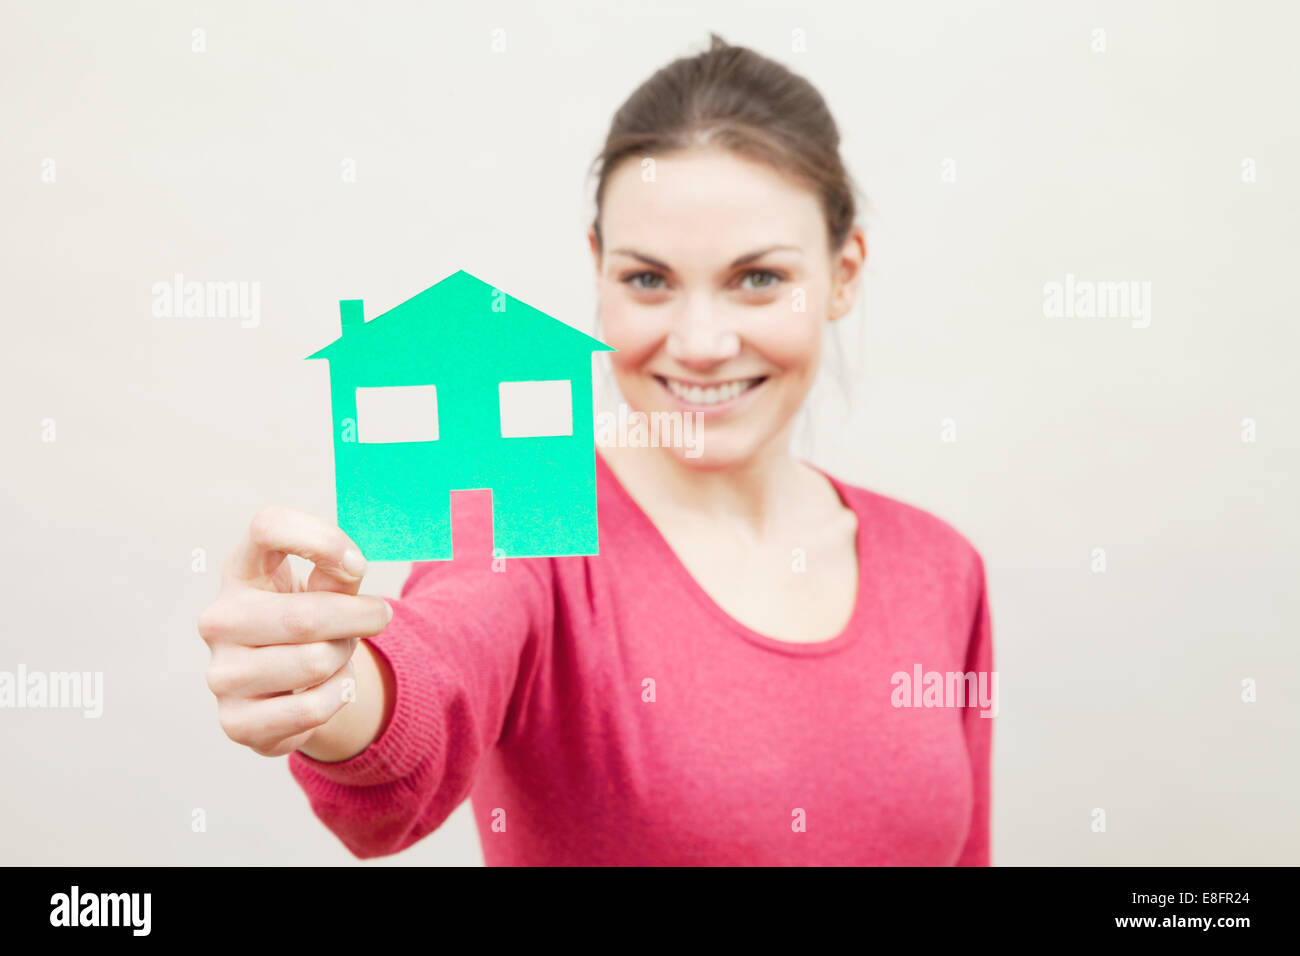 Young woman holding paper cut out d'une maison Photo Stock